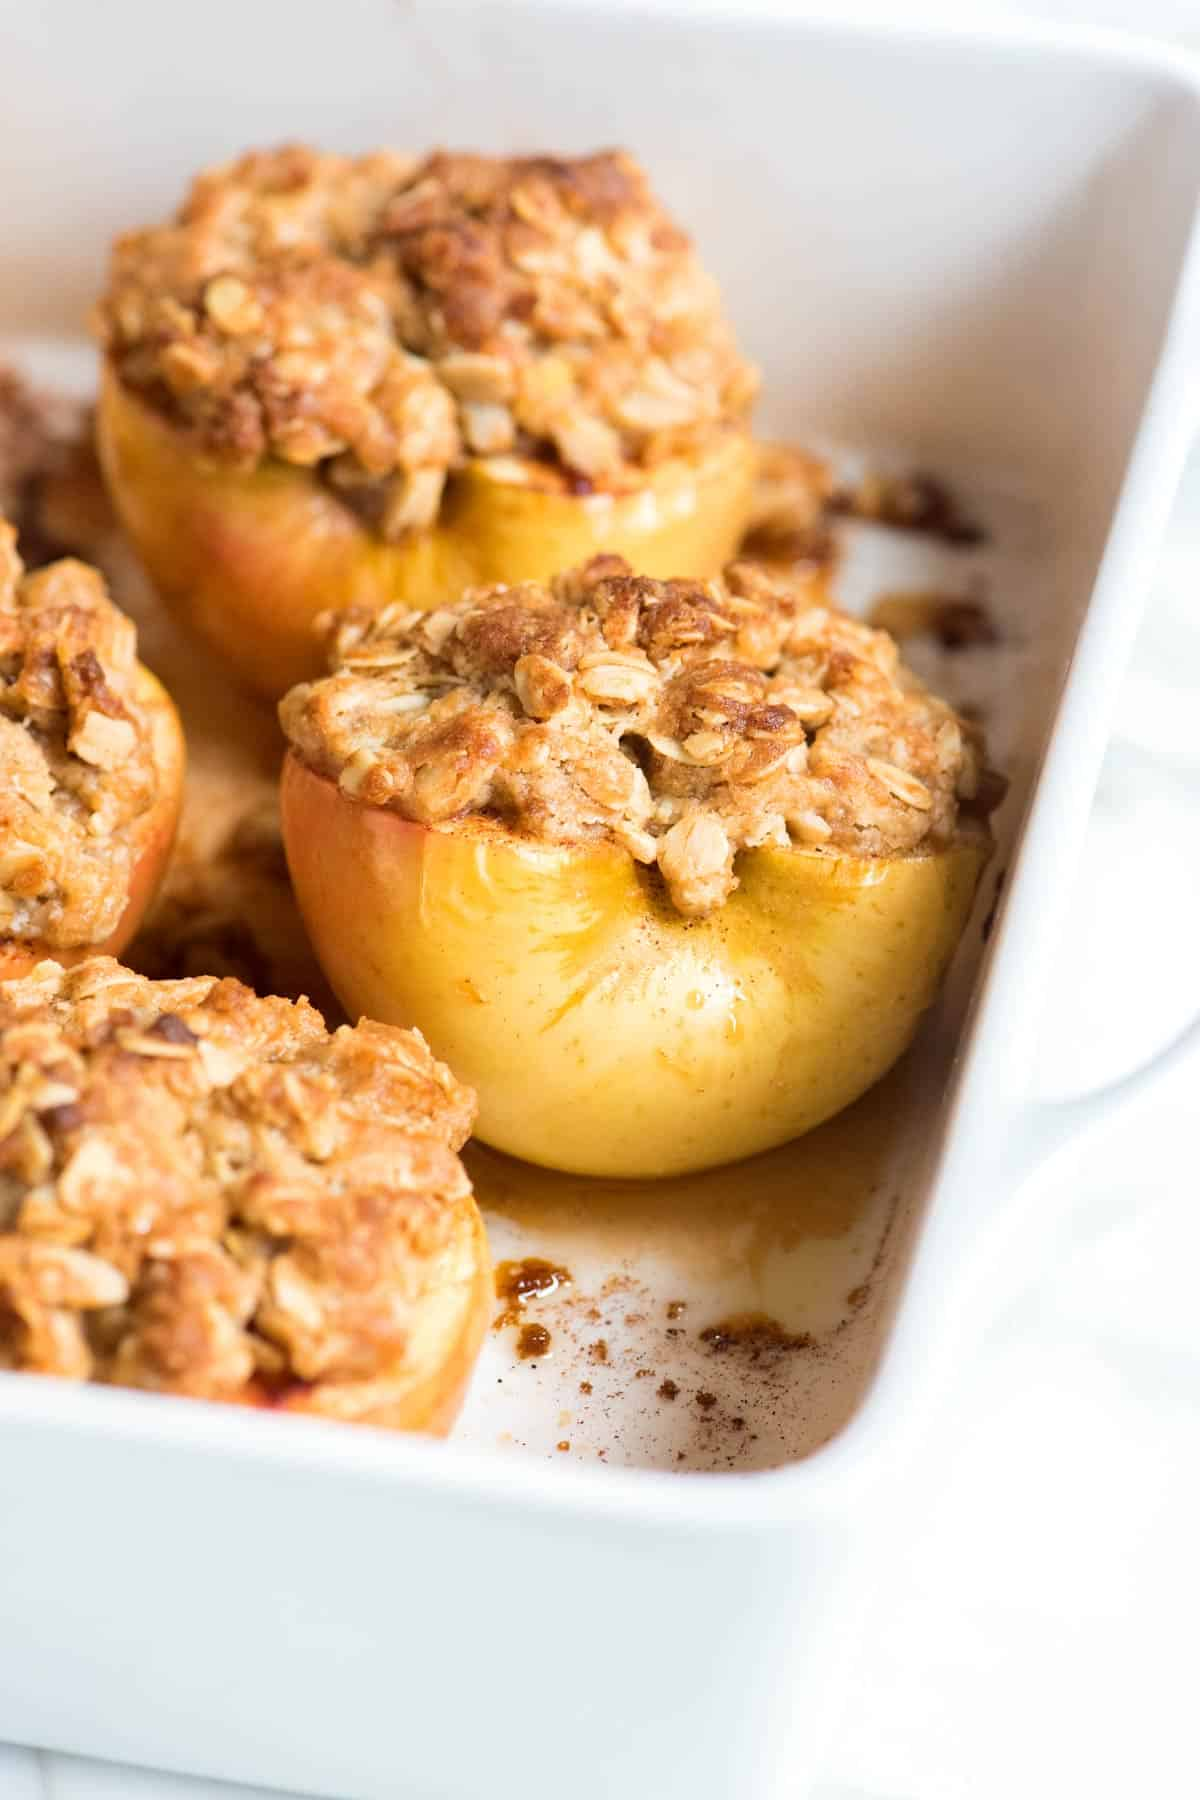 How to Make Our Baked Apples Recipe